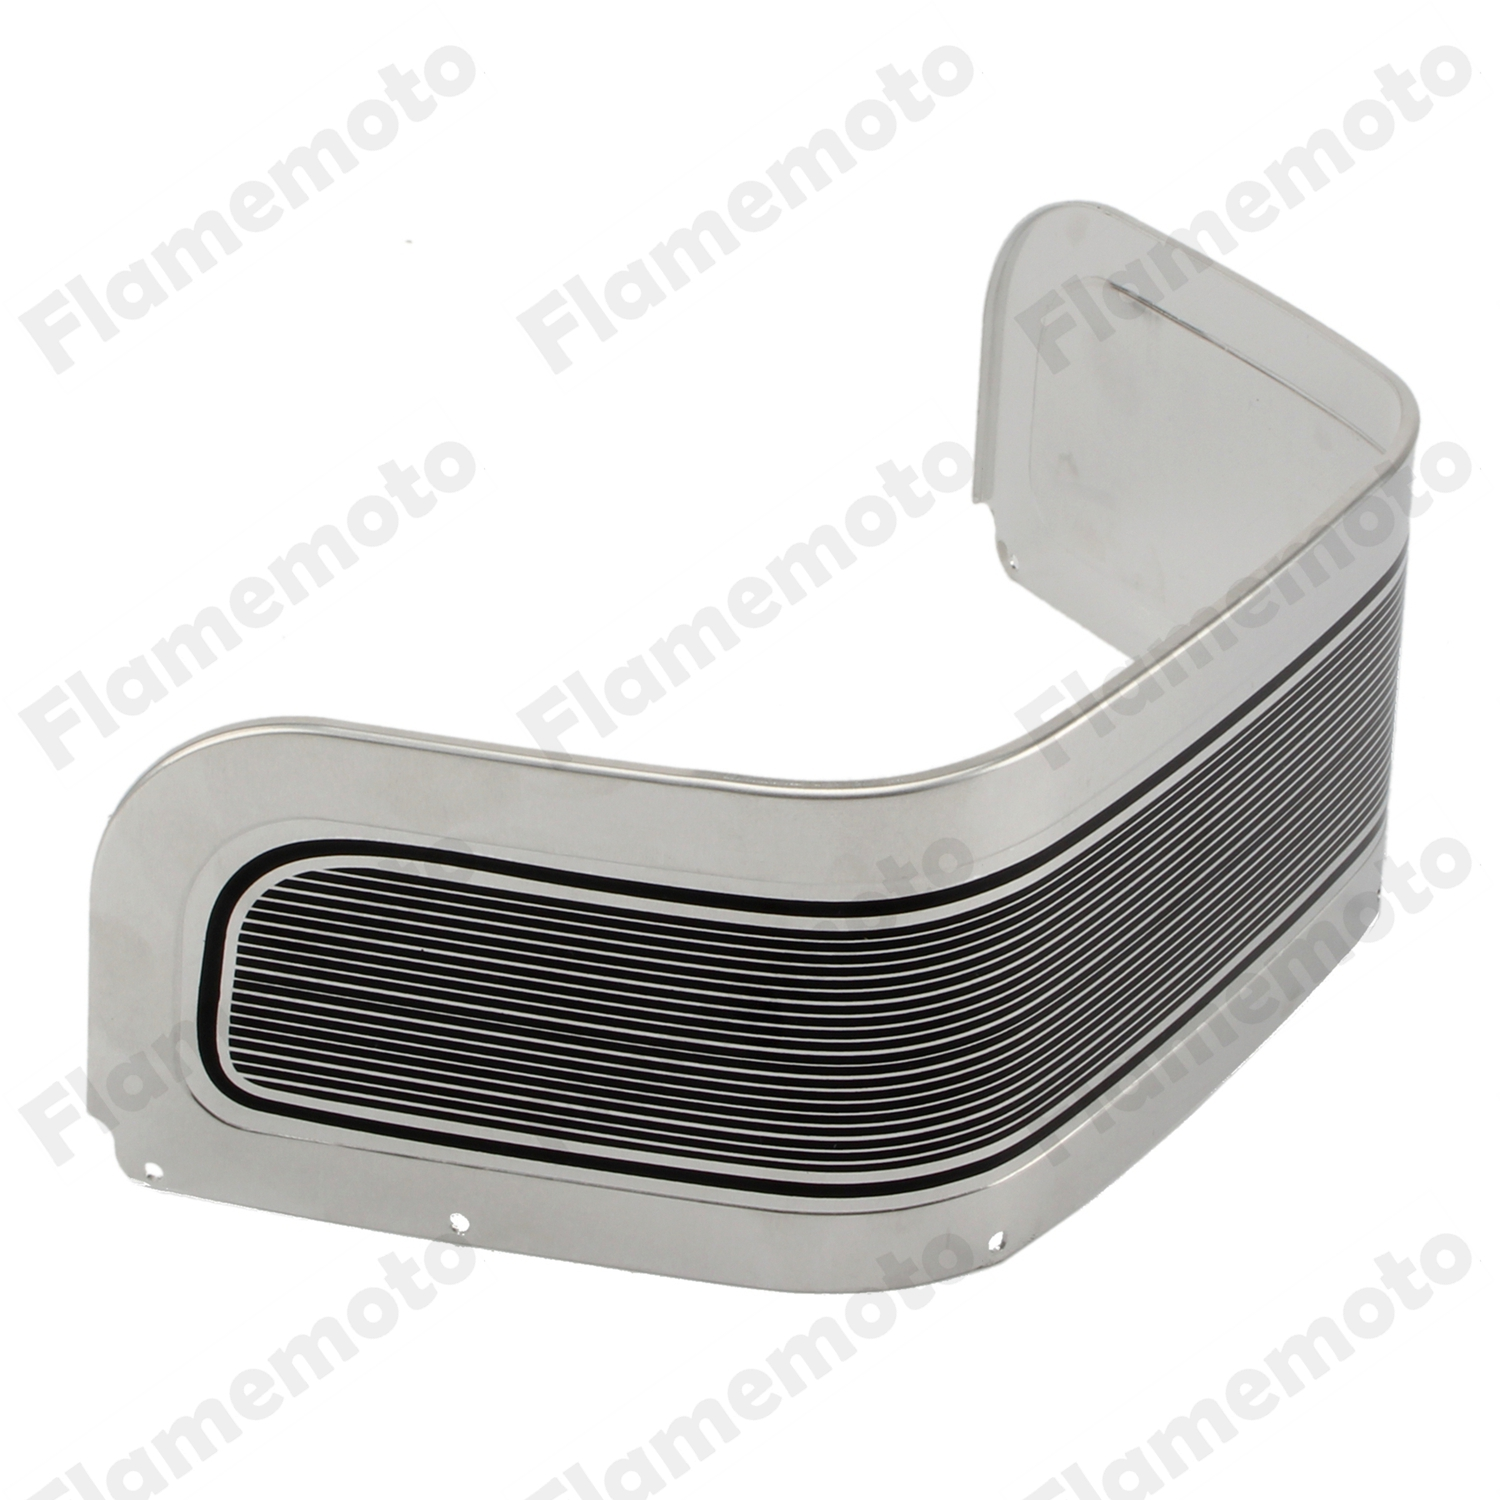 Motorcycle Bike Parts Aluminum Front Fender Trim Skirt For Harley Touring Electra Glide Road King 2014-2016 измайлова е ред мир вокруг 9 развивающих книжек кубиков